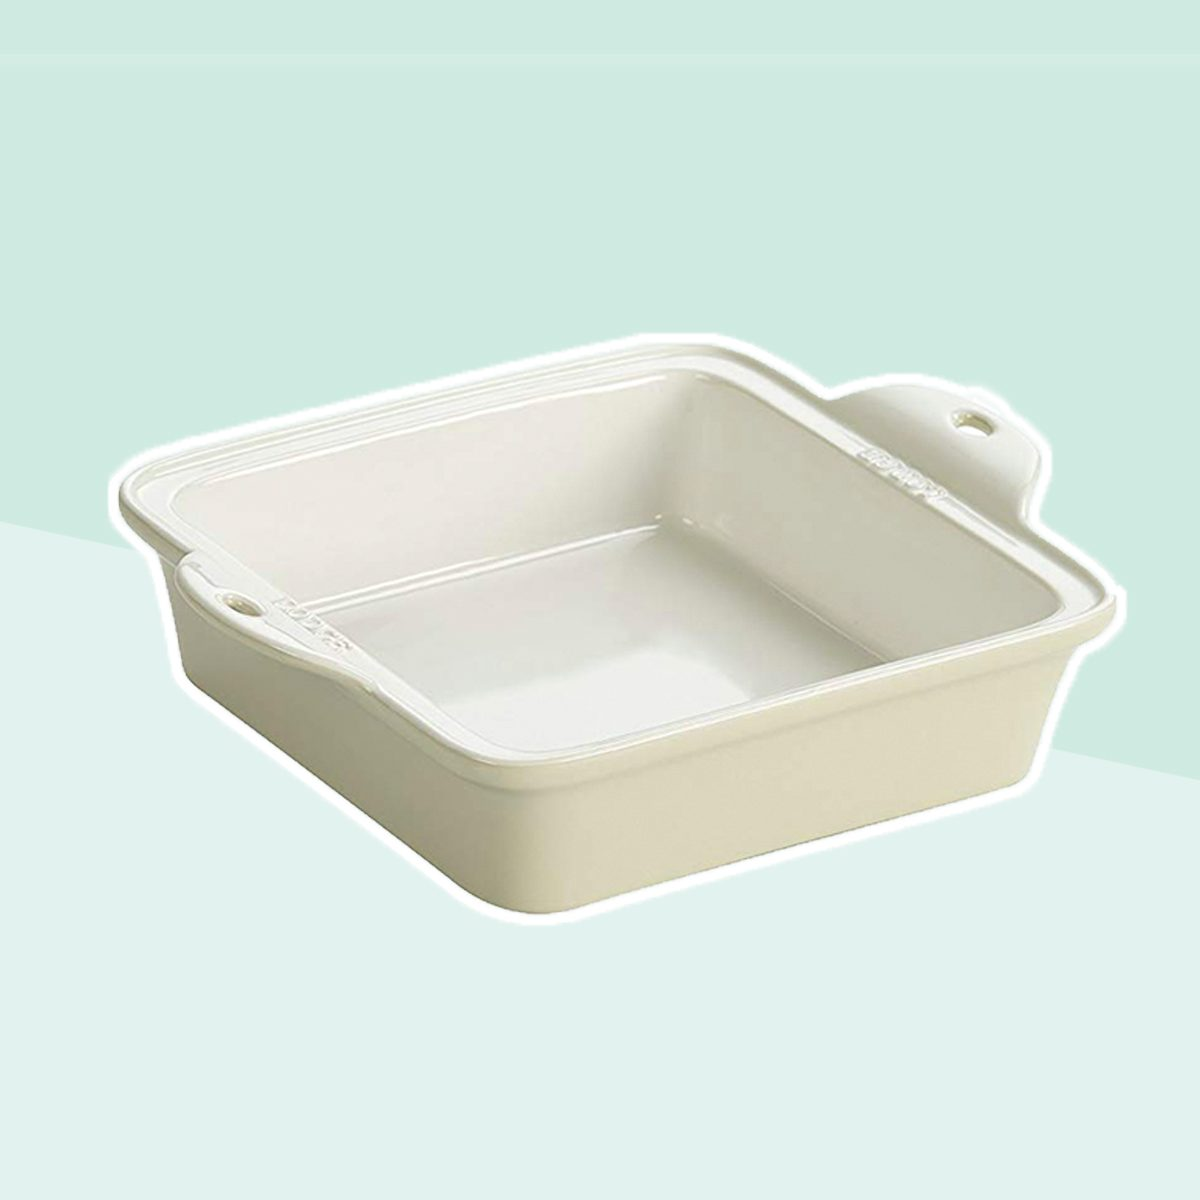 "Lodge STW8SQ13 Stoneware Baking Dish, 8"" x 8"", Oyster White"